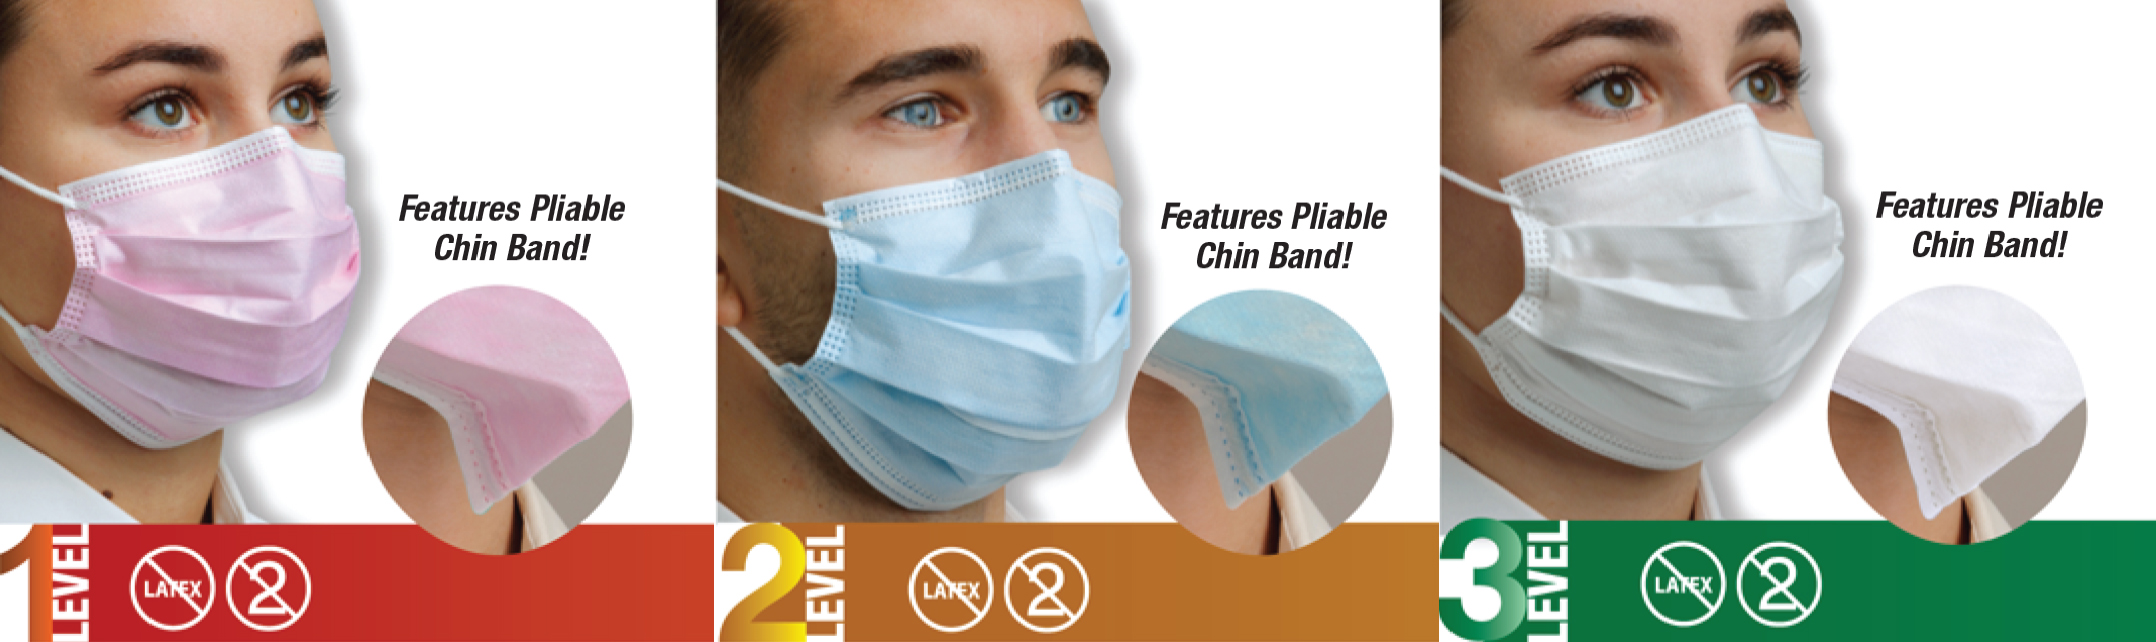 disposable face mask level 3